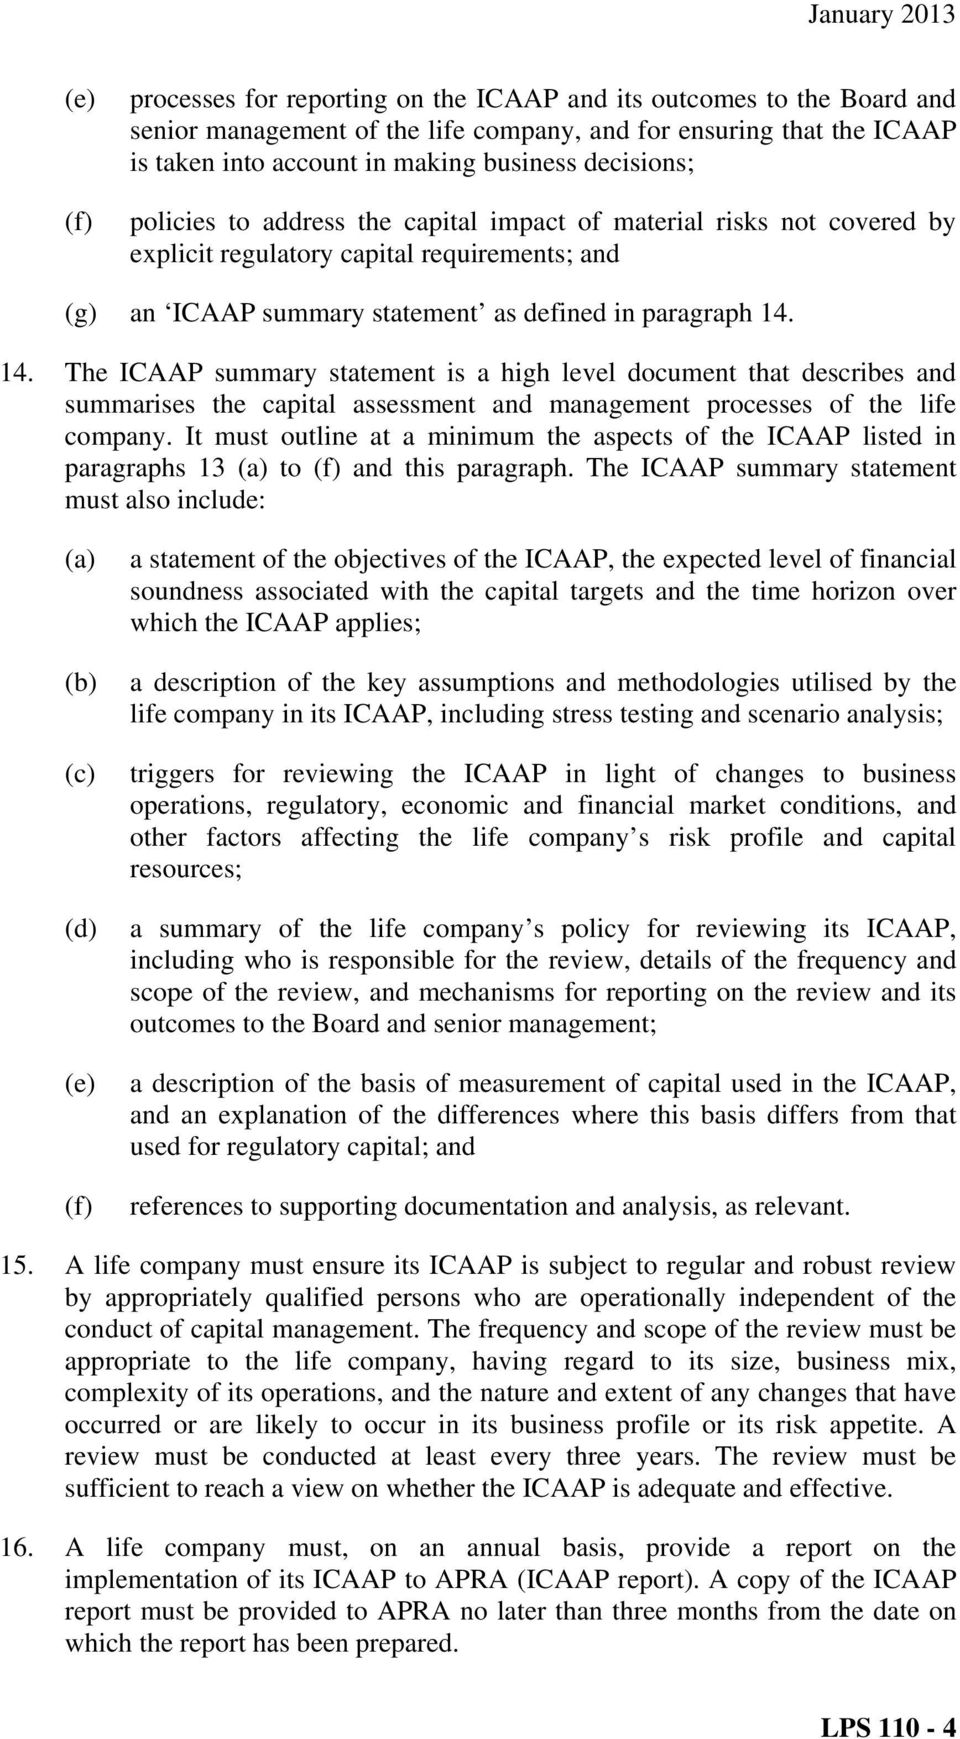 14. The ICAAP summary statement is a high level document that describes and summarises the capital assessment and management processes of the life company.